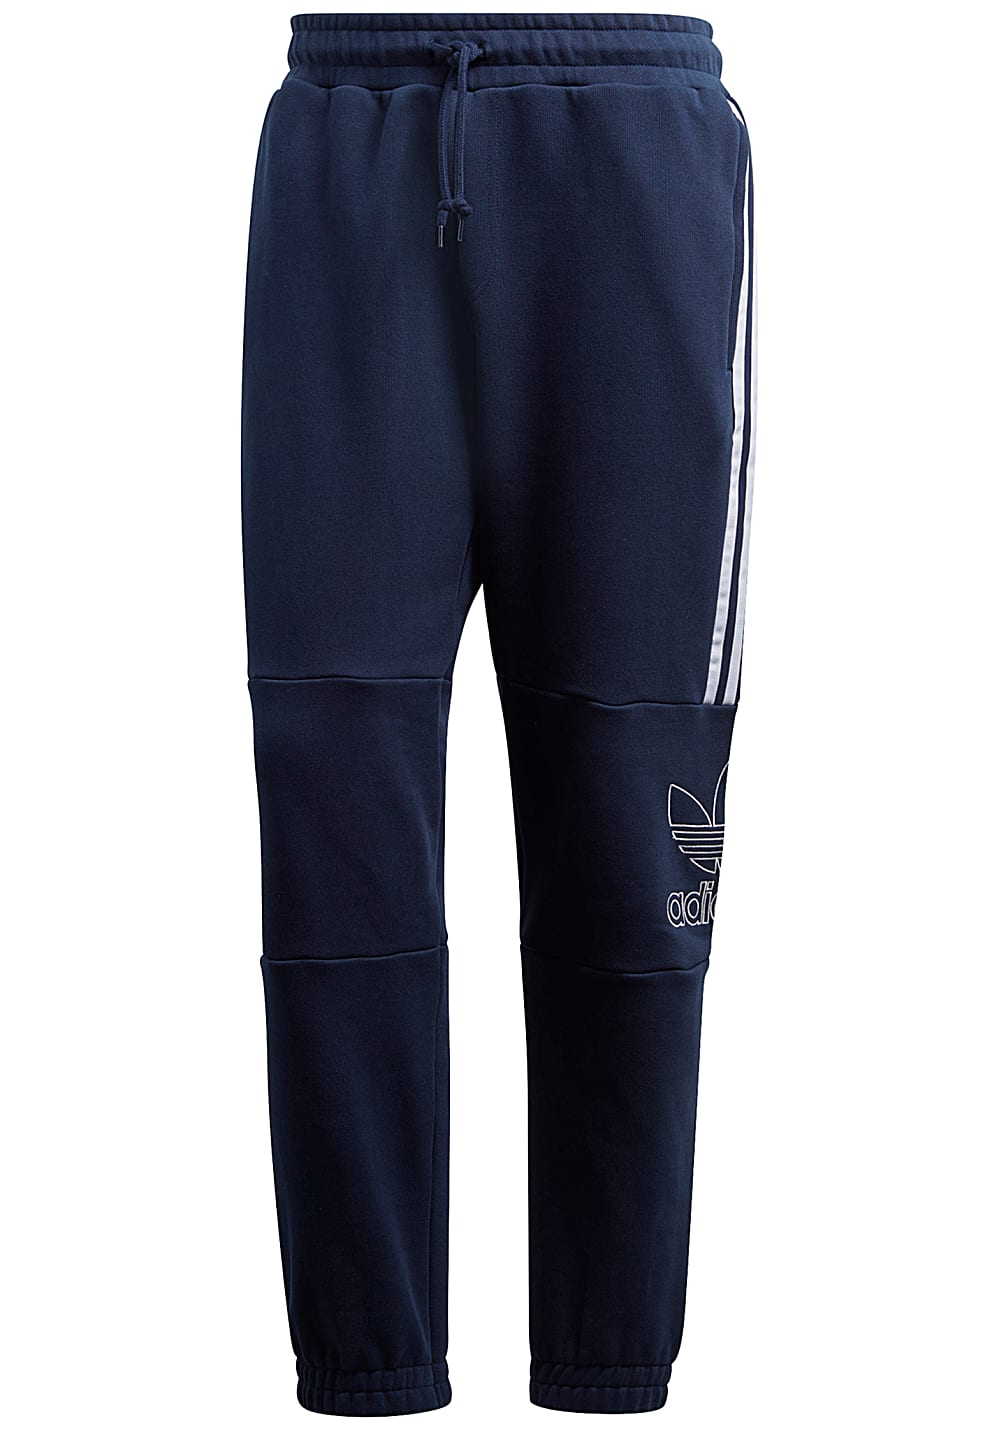 42ae06fe3046 ... ADIDAS ORIGINALS Outline - Trackpants for Men - Blue. Back to Overview.  -15%